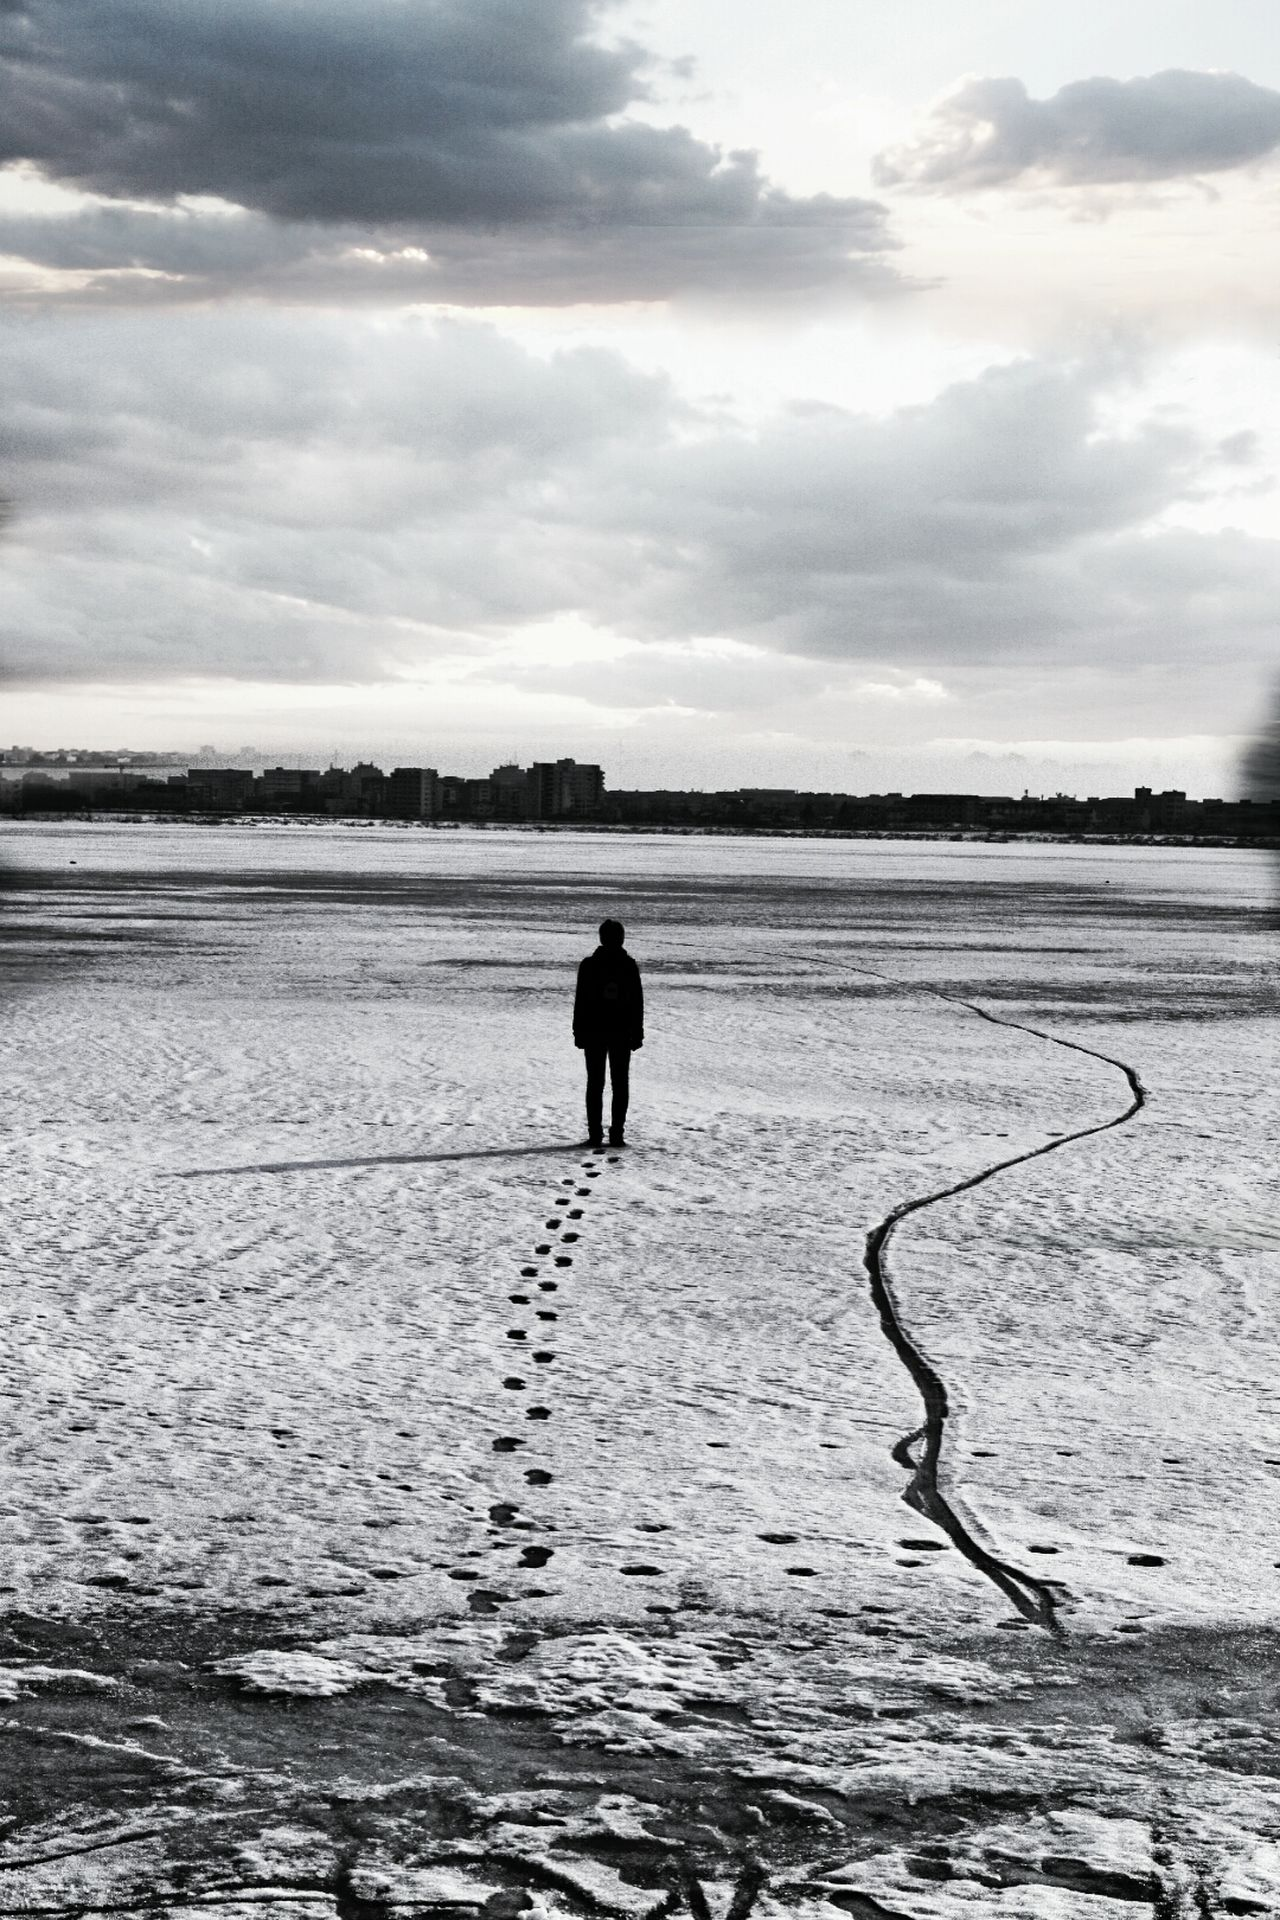 In the middle of a frozen lake near the town of Bucharest Full Length Silhouette Rear View Landscape Lake Cloud - Sky One Person Scenics Adults Only Outdoors Water One Man Only Day People Only Men Nature Sky Wheat Freshness First Eyeem Photo Rural Scene Tranquil Scene Cereal Plant Backgrounds Beautiful Woman